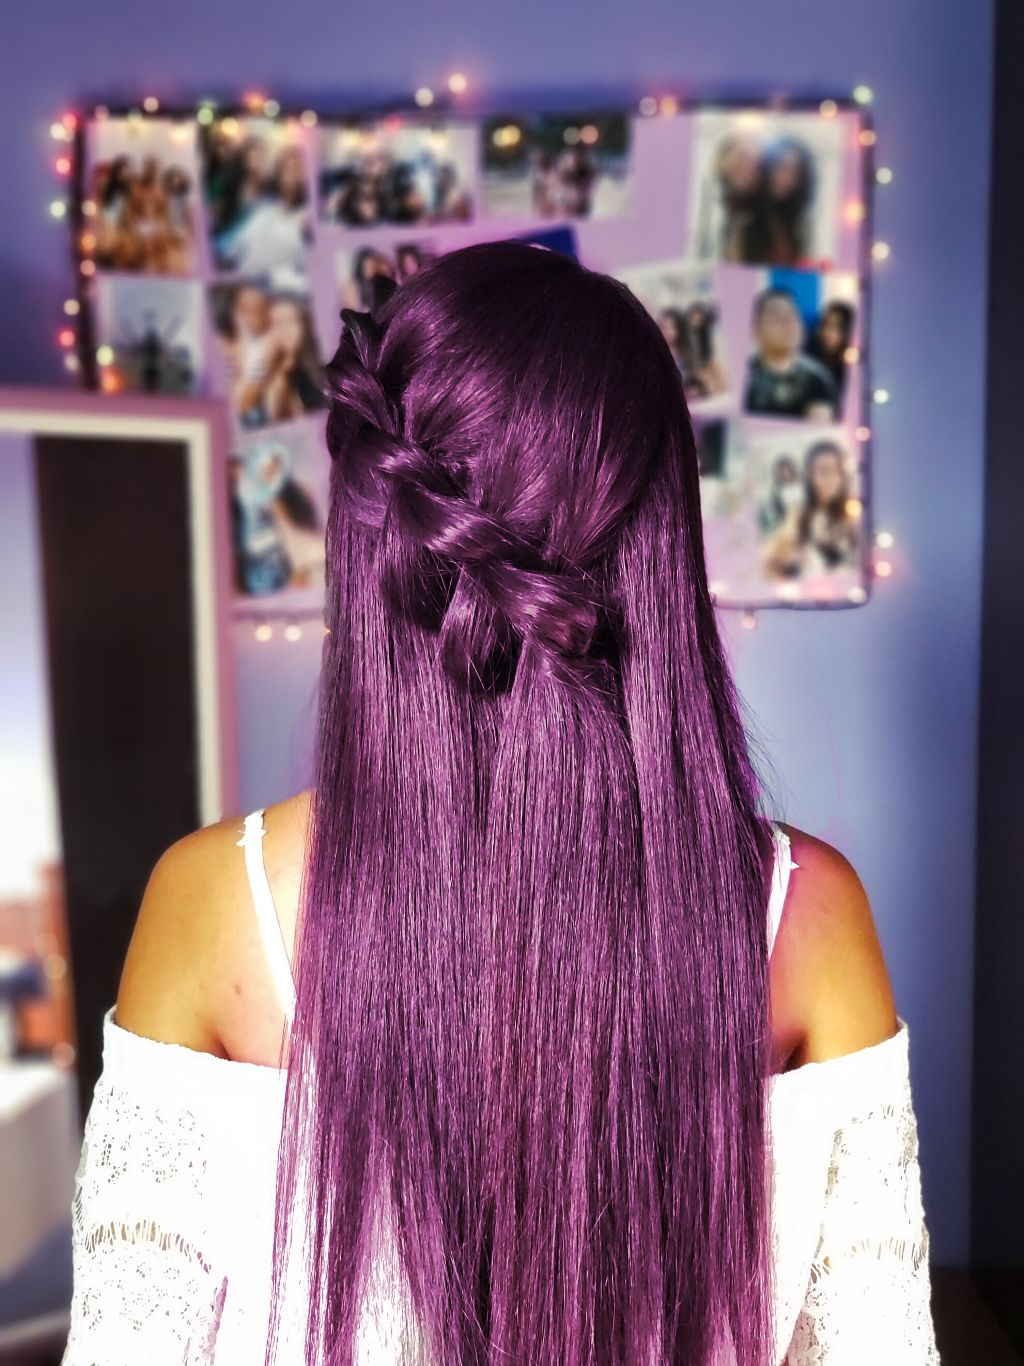 #colourfulhair #purple